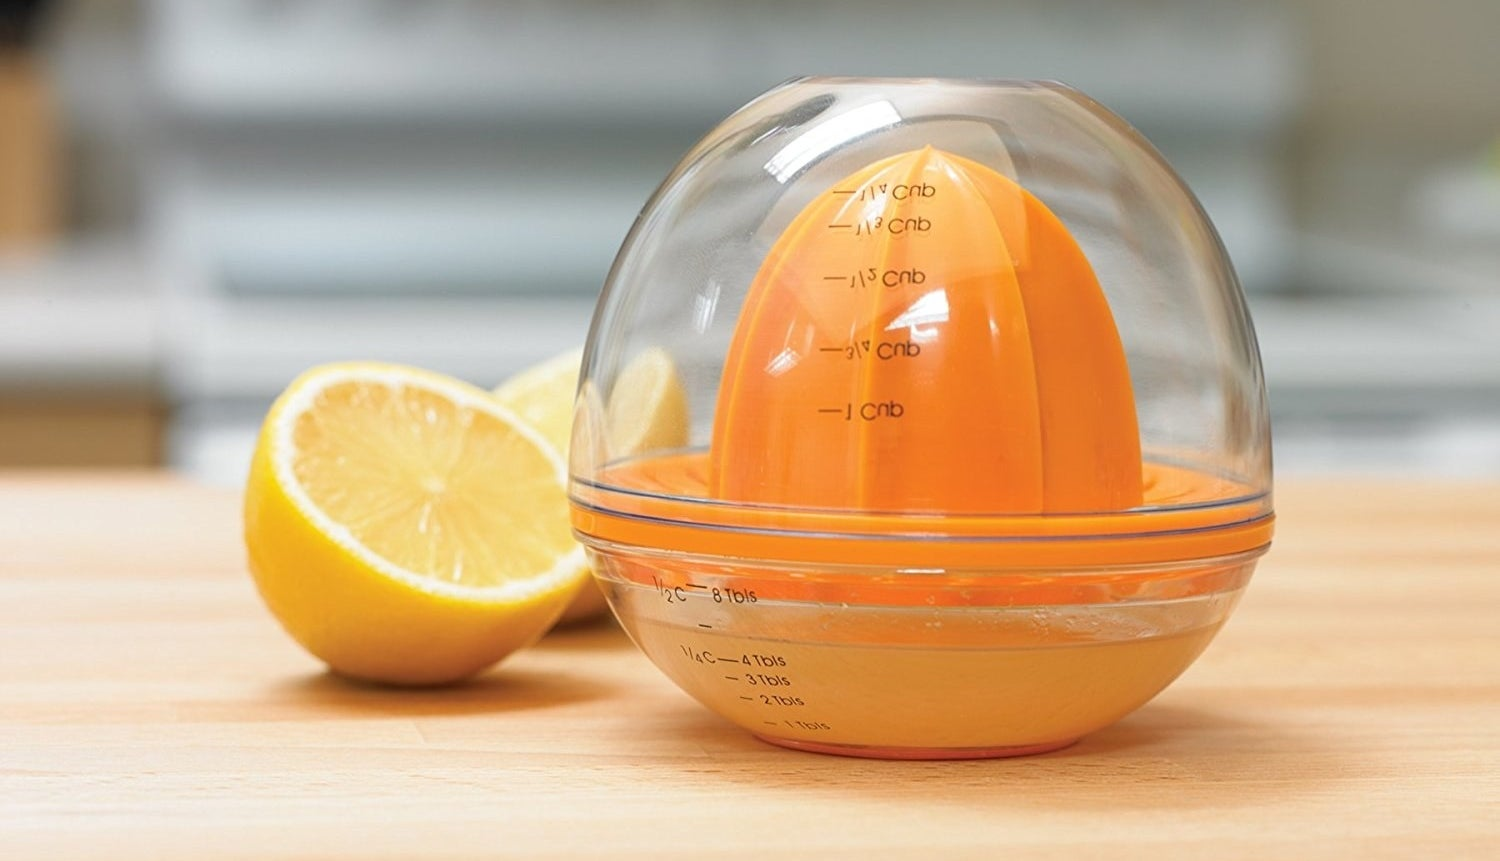 The clear and orange juicer